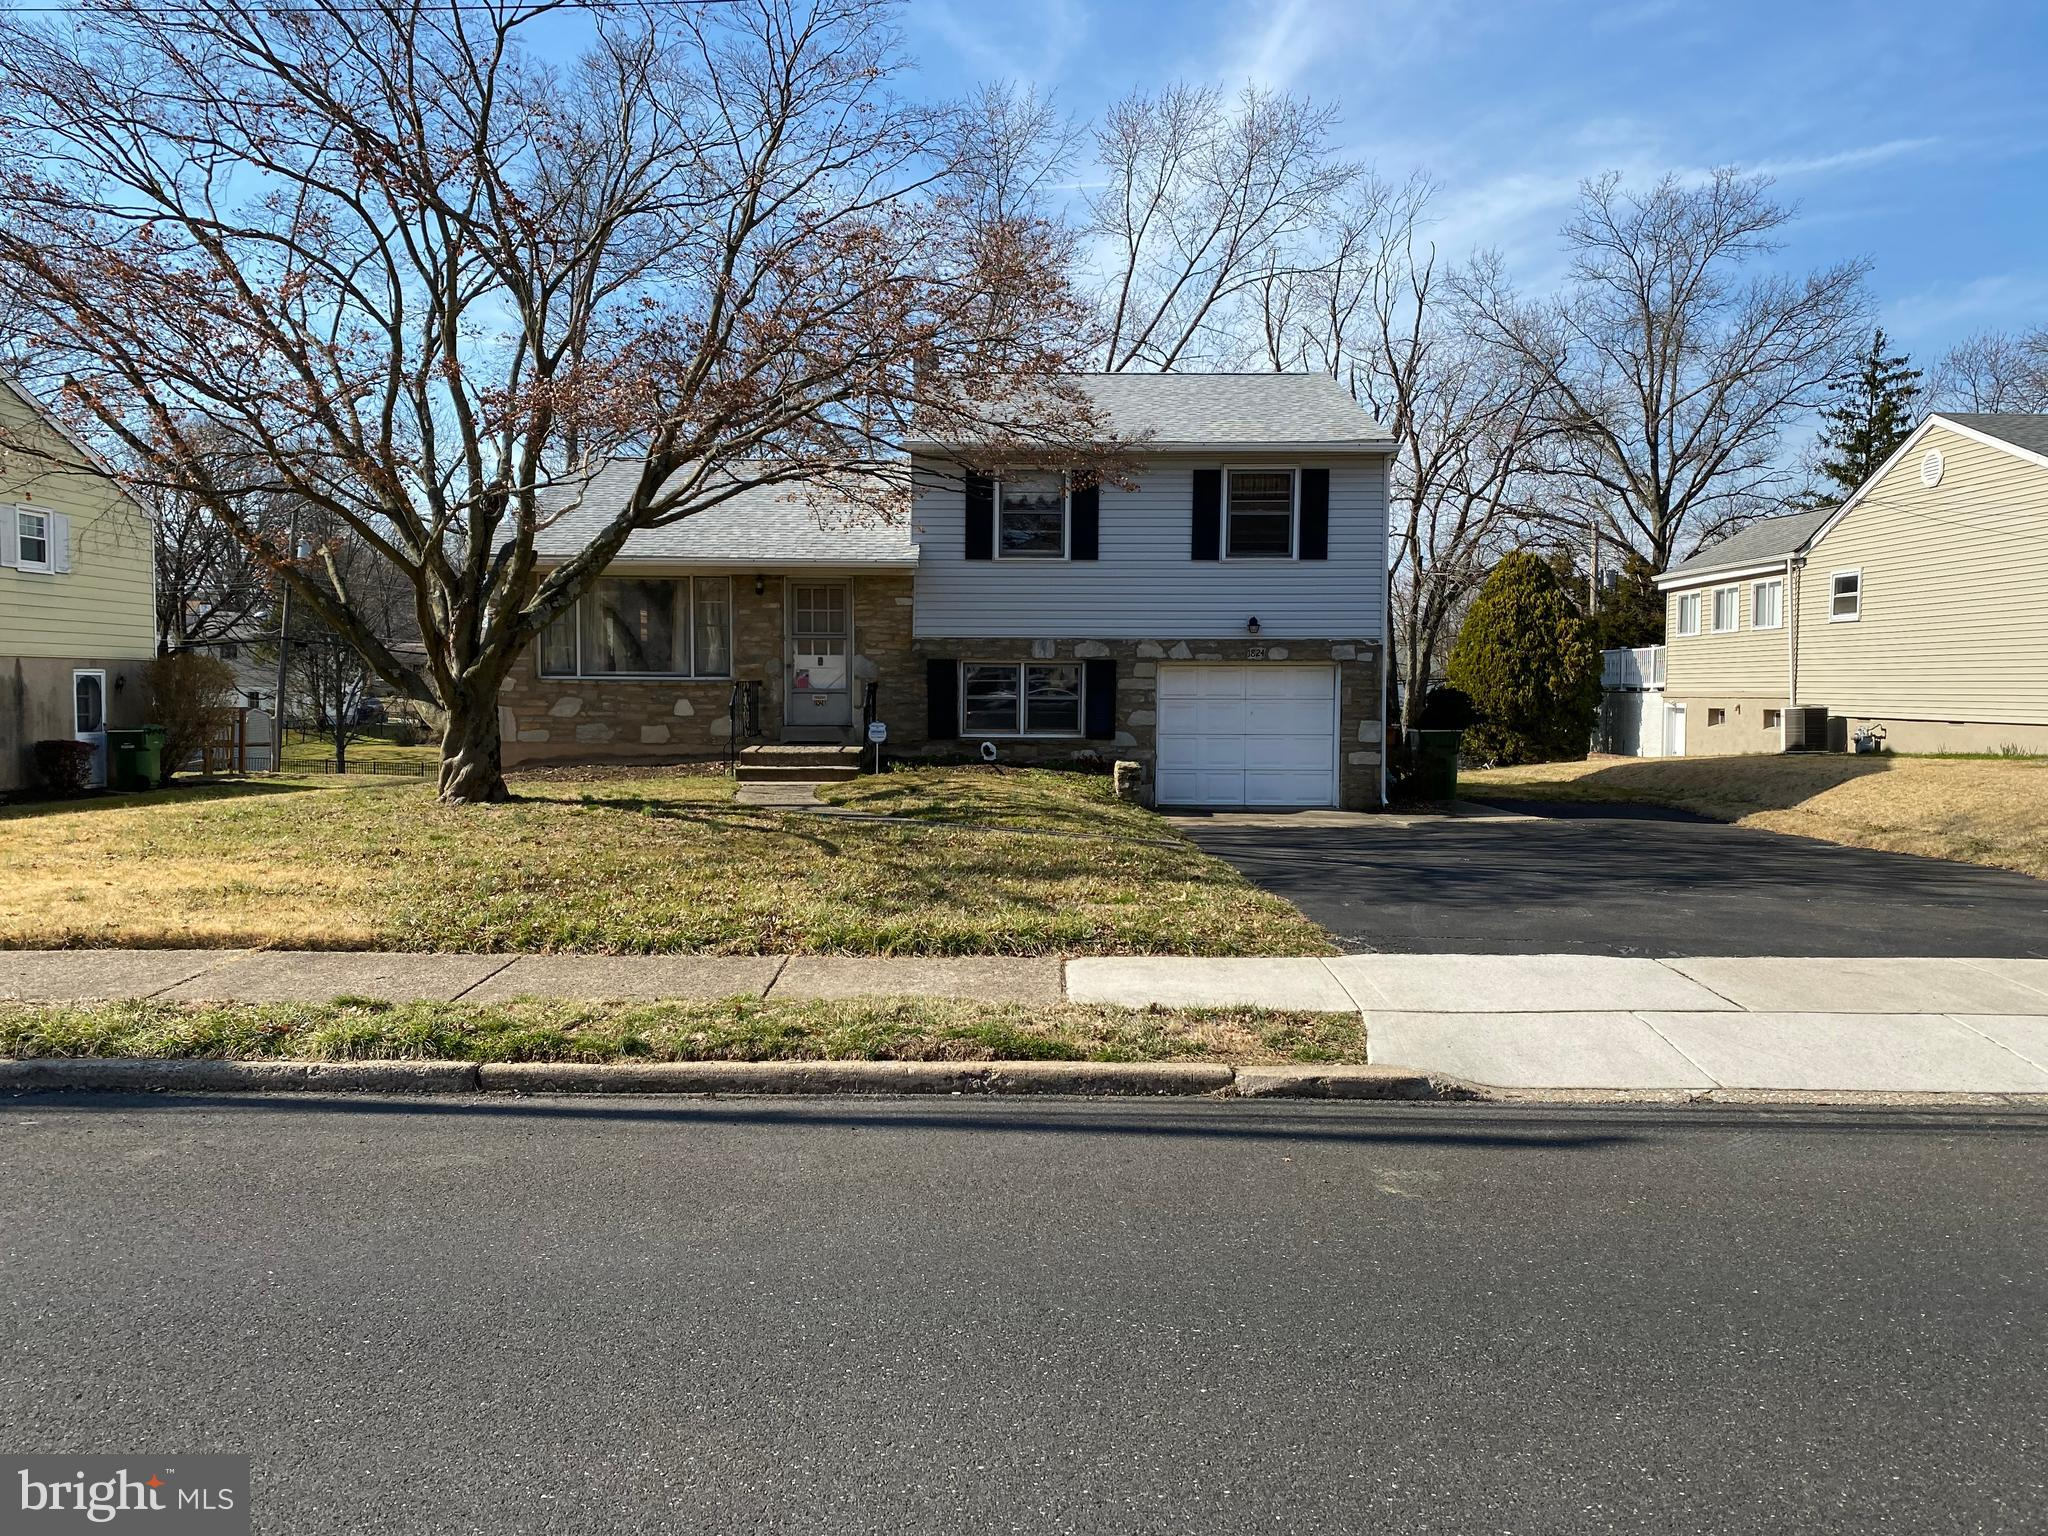 1824 N NORTH HILLS AVENUE, WILLOW GROVE, PA 19090